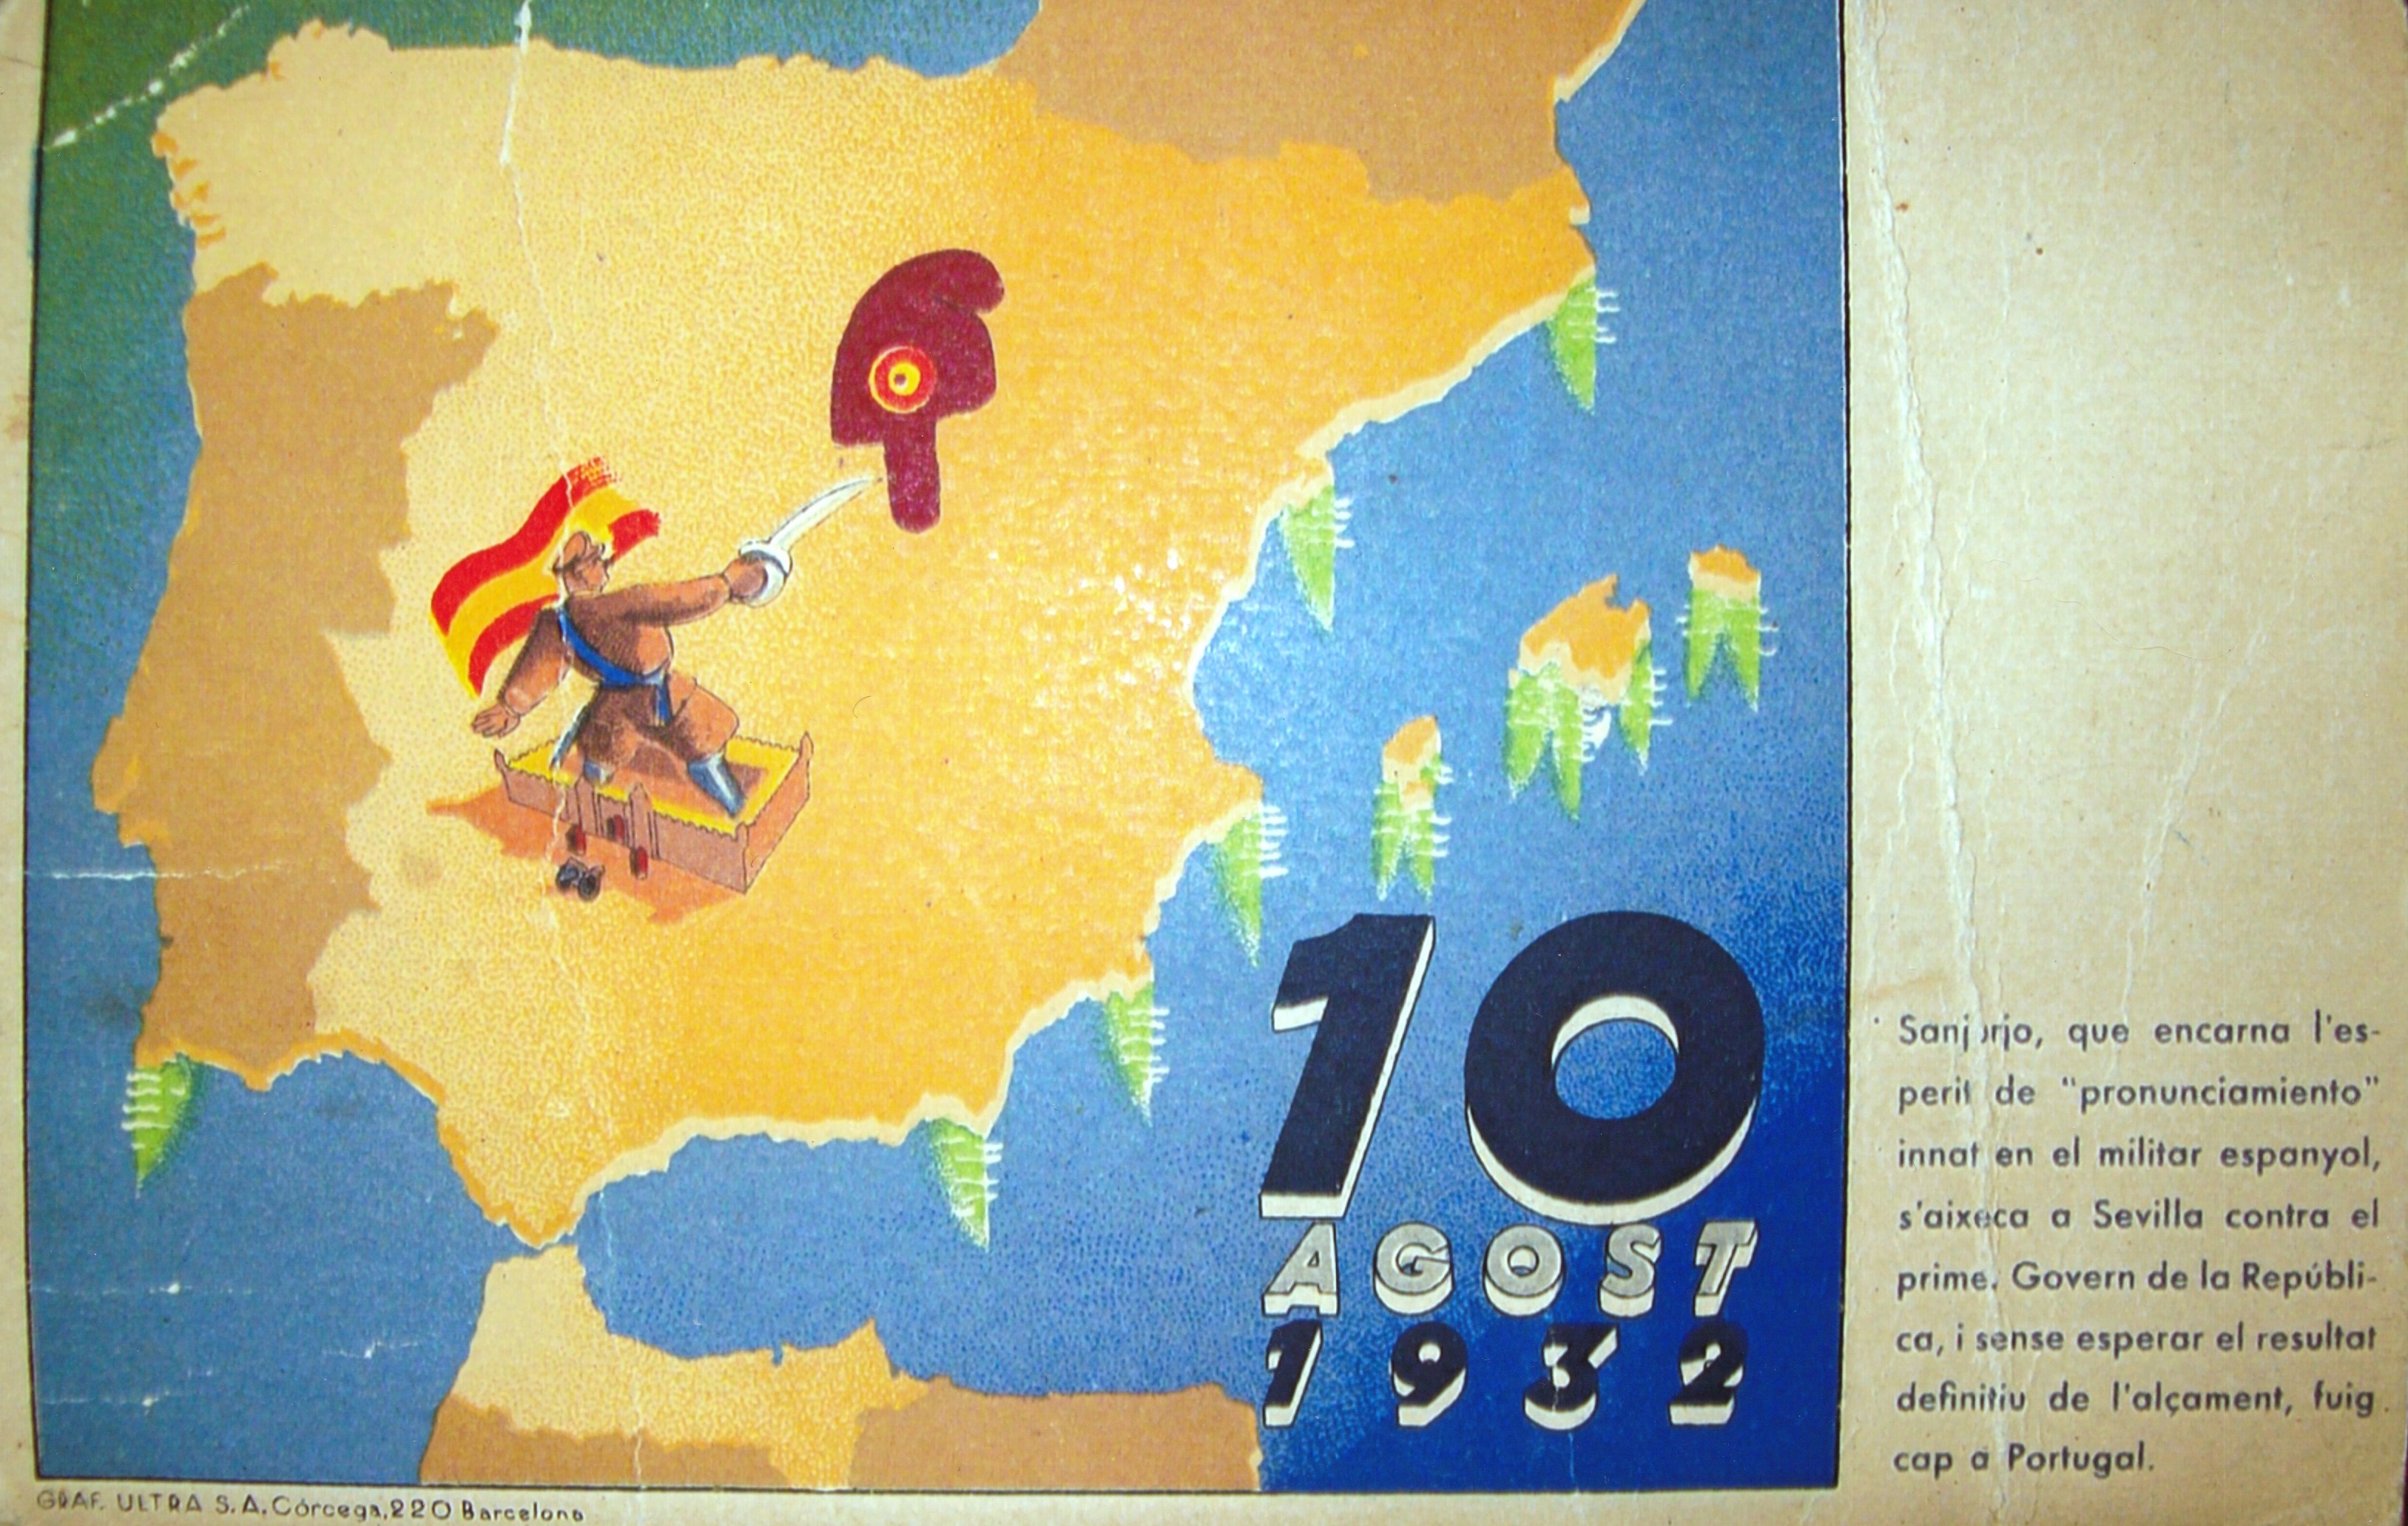 A POST CARD FROM THE SPANISH CIVIL WAR